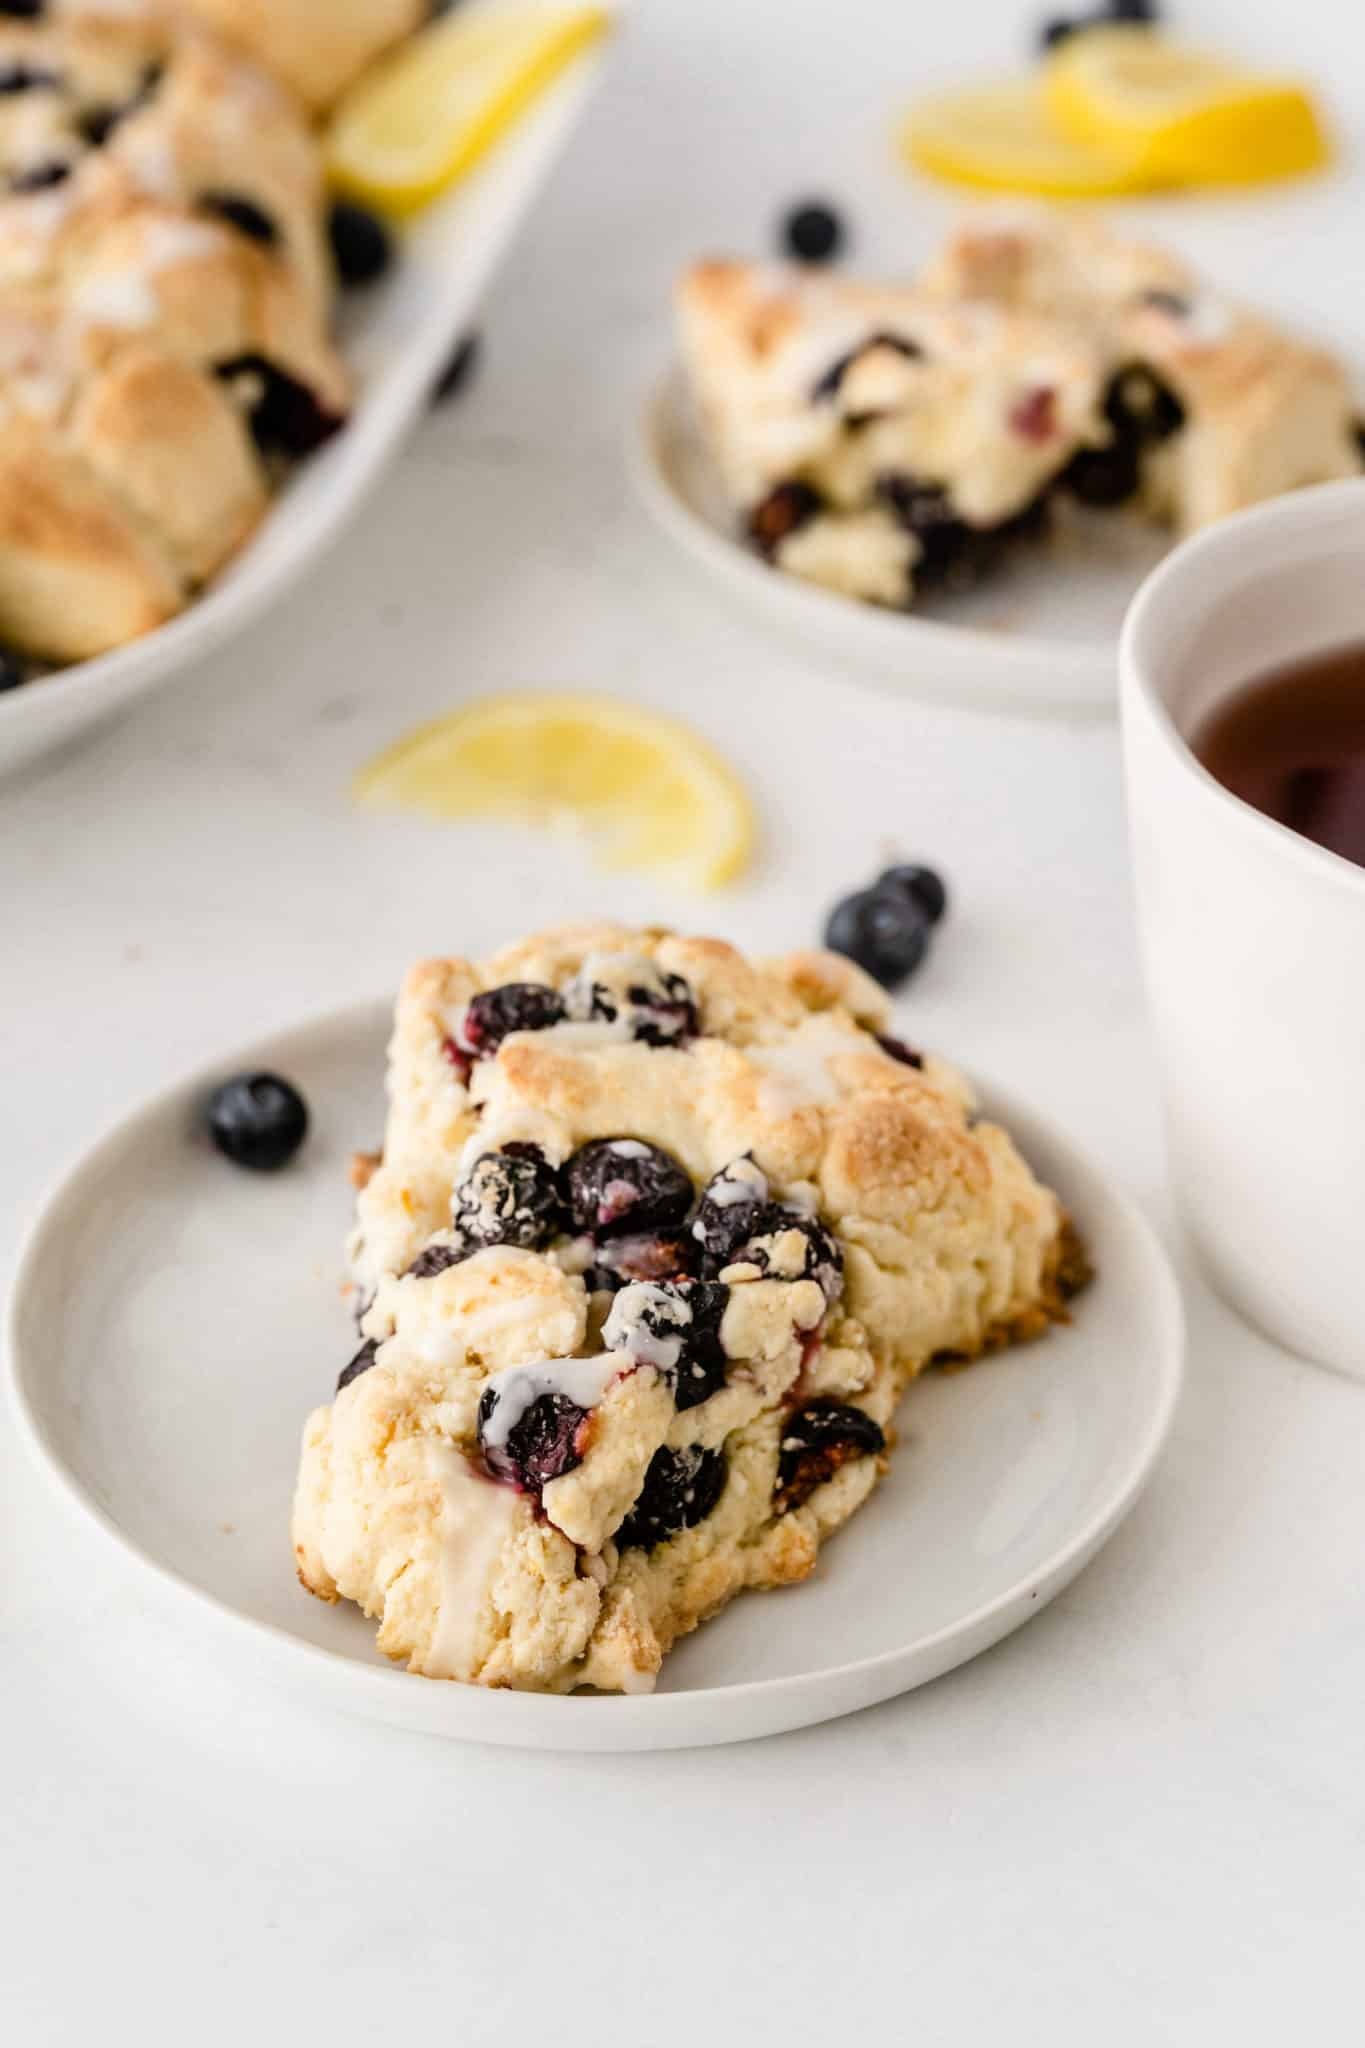 blueberry scone served on a plate with fresh blueberries and a cup of tea